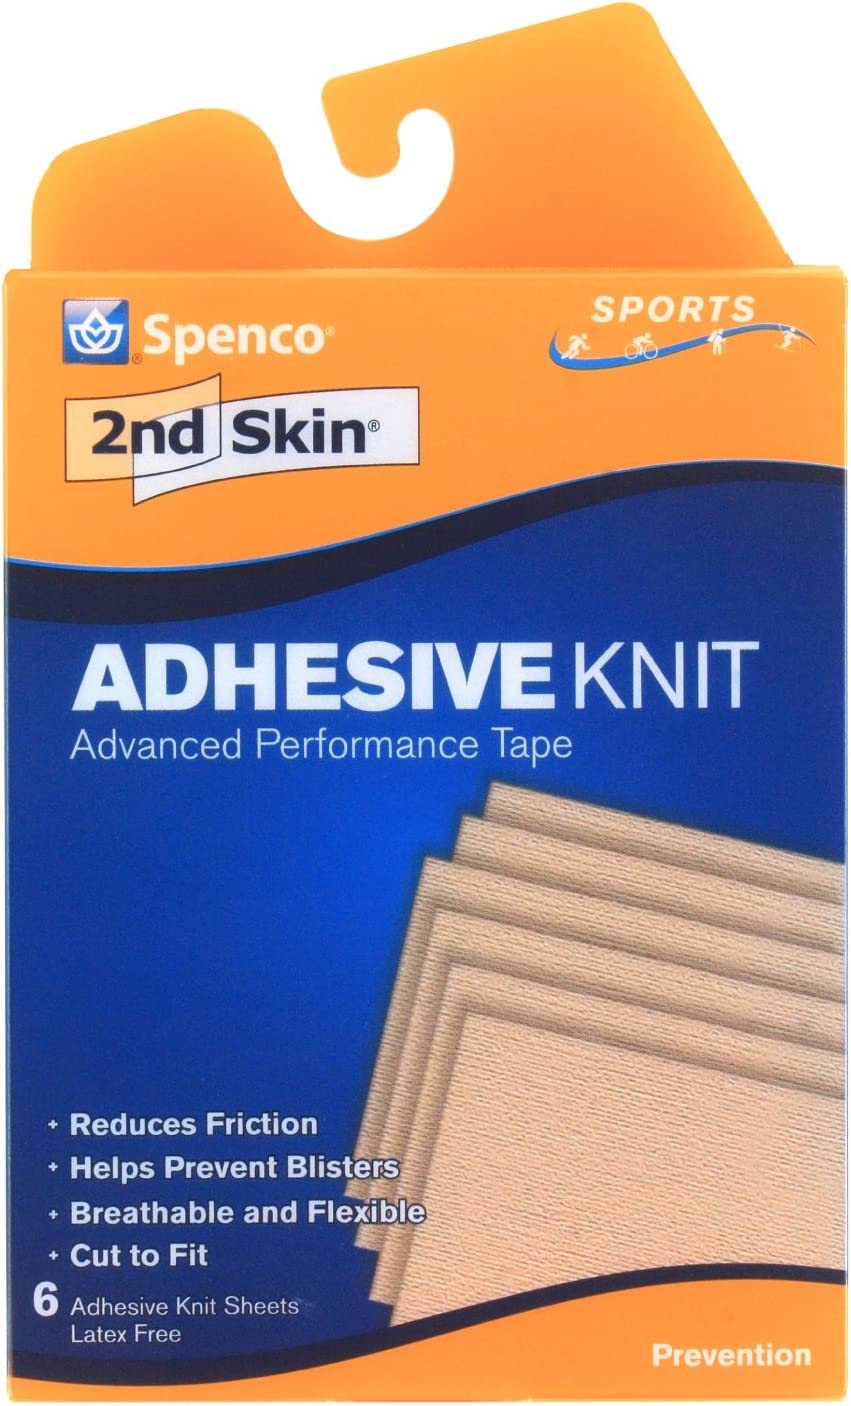 Spenco 2nd Skin Adhesive Knit Blister Protection, Sports, 6 Count